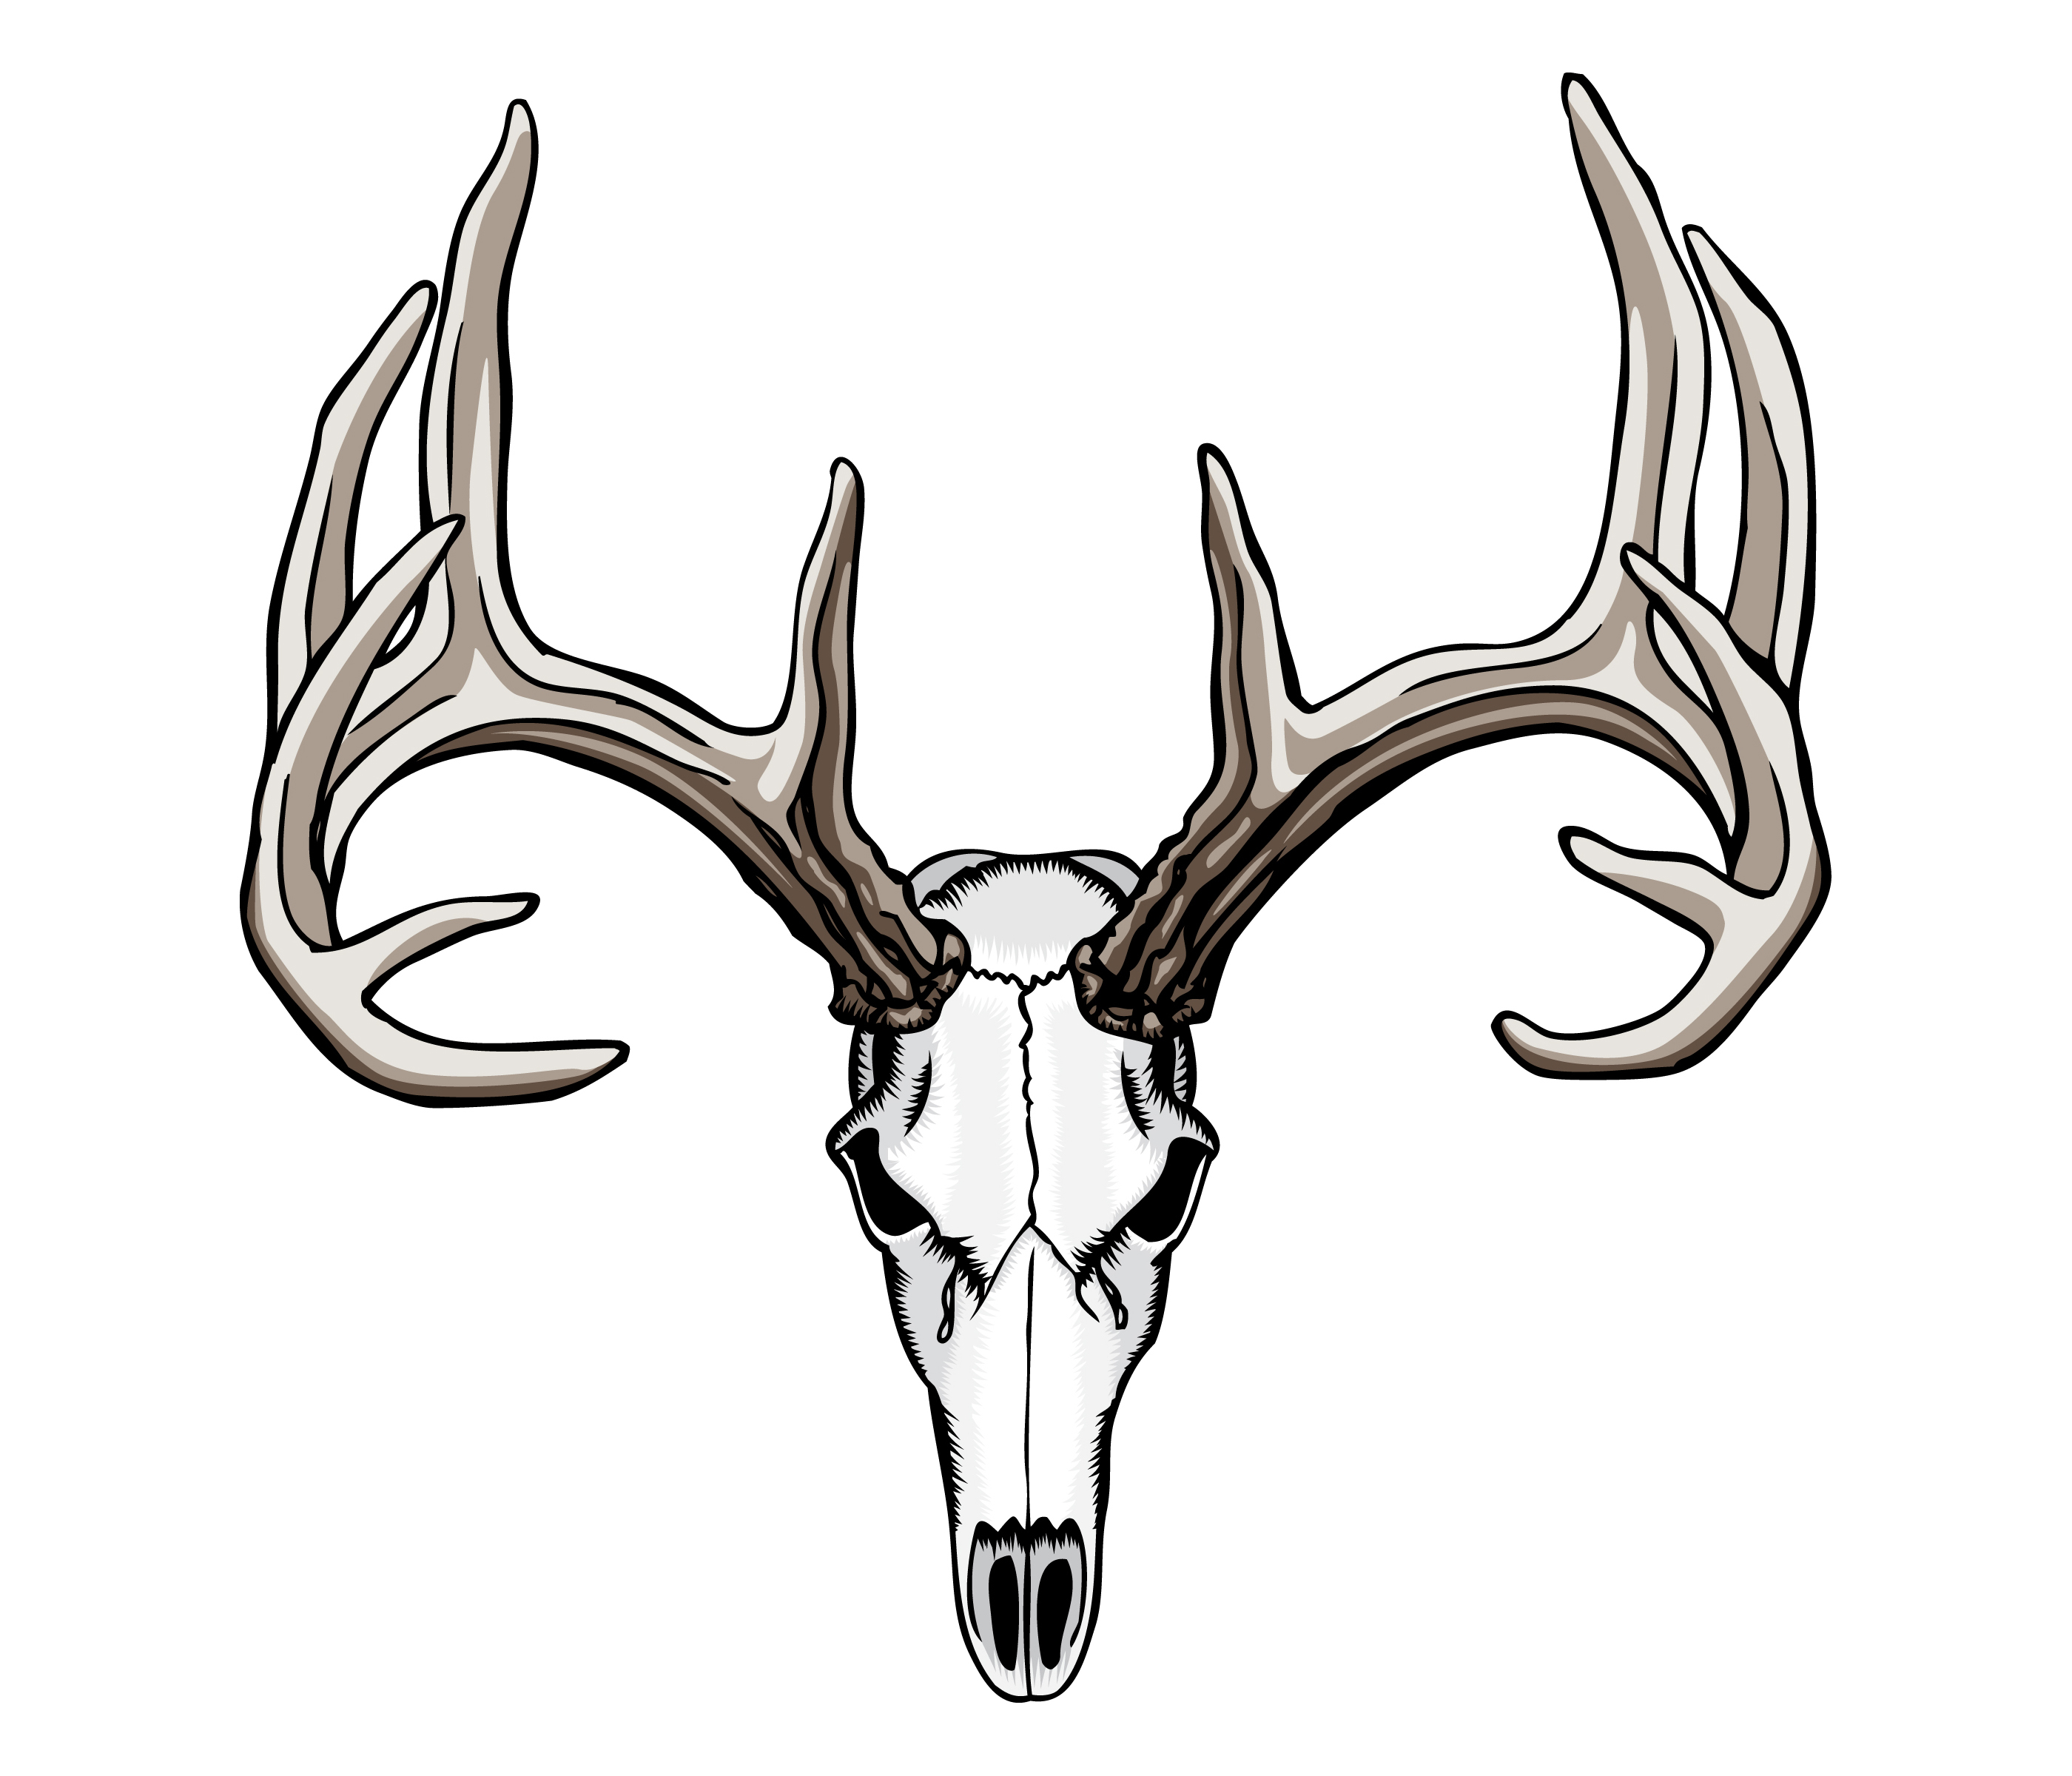 Elk skull drawing - photo#17